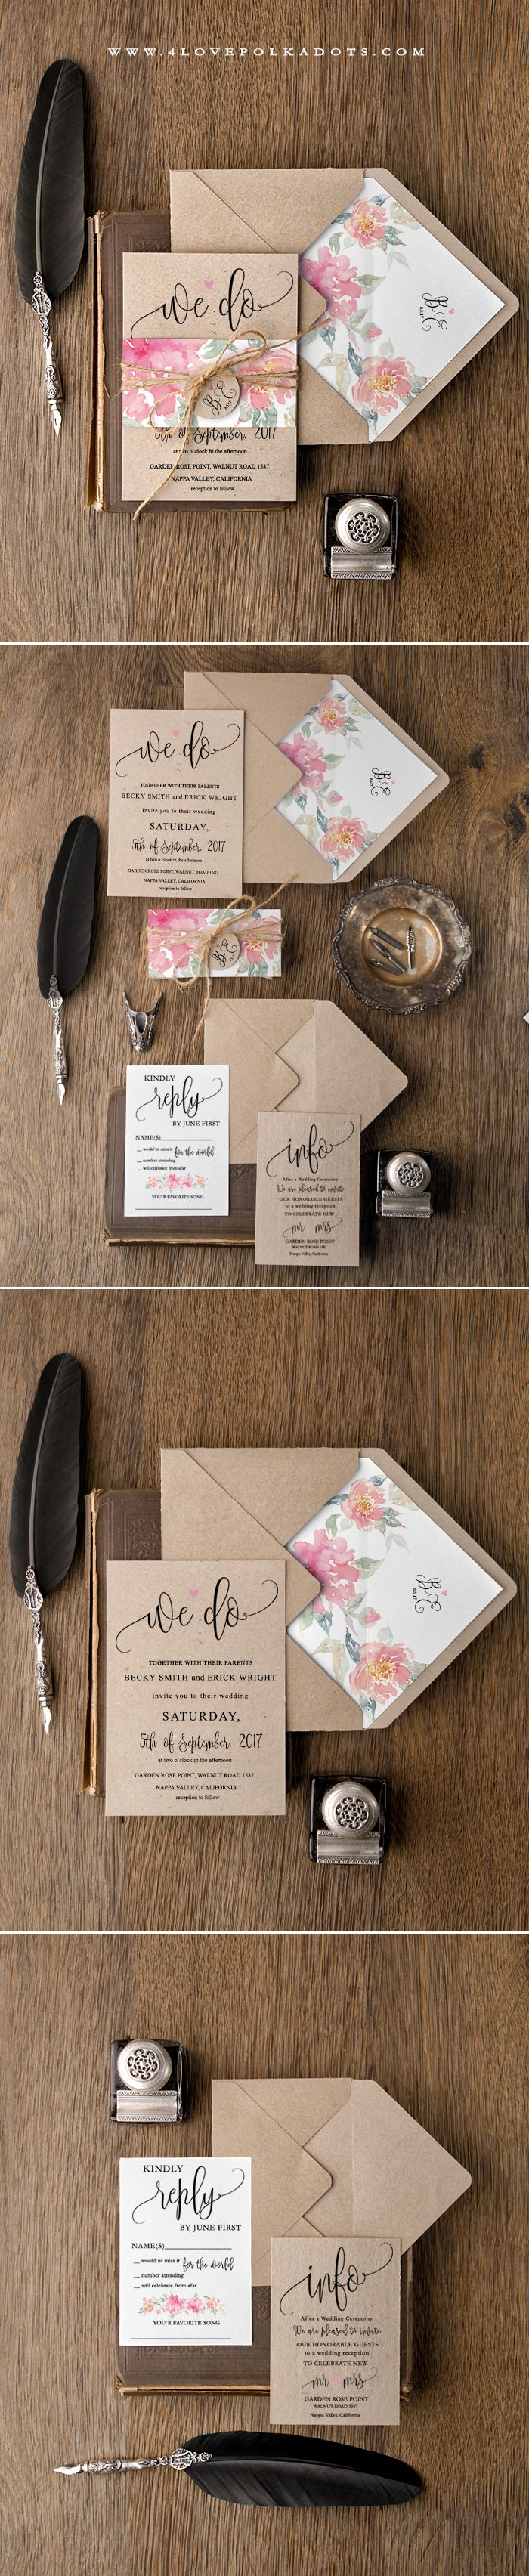 13 Best Invitation Card Images On Pinterest Invitation Cards